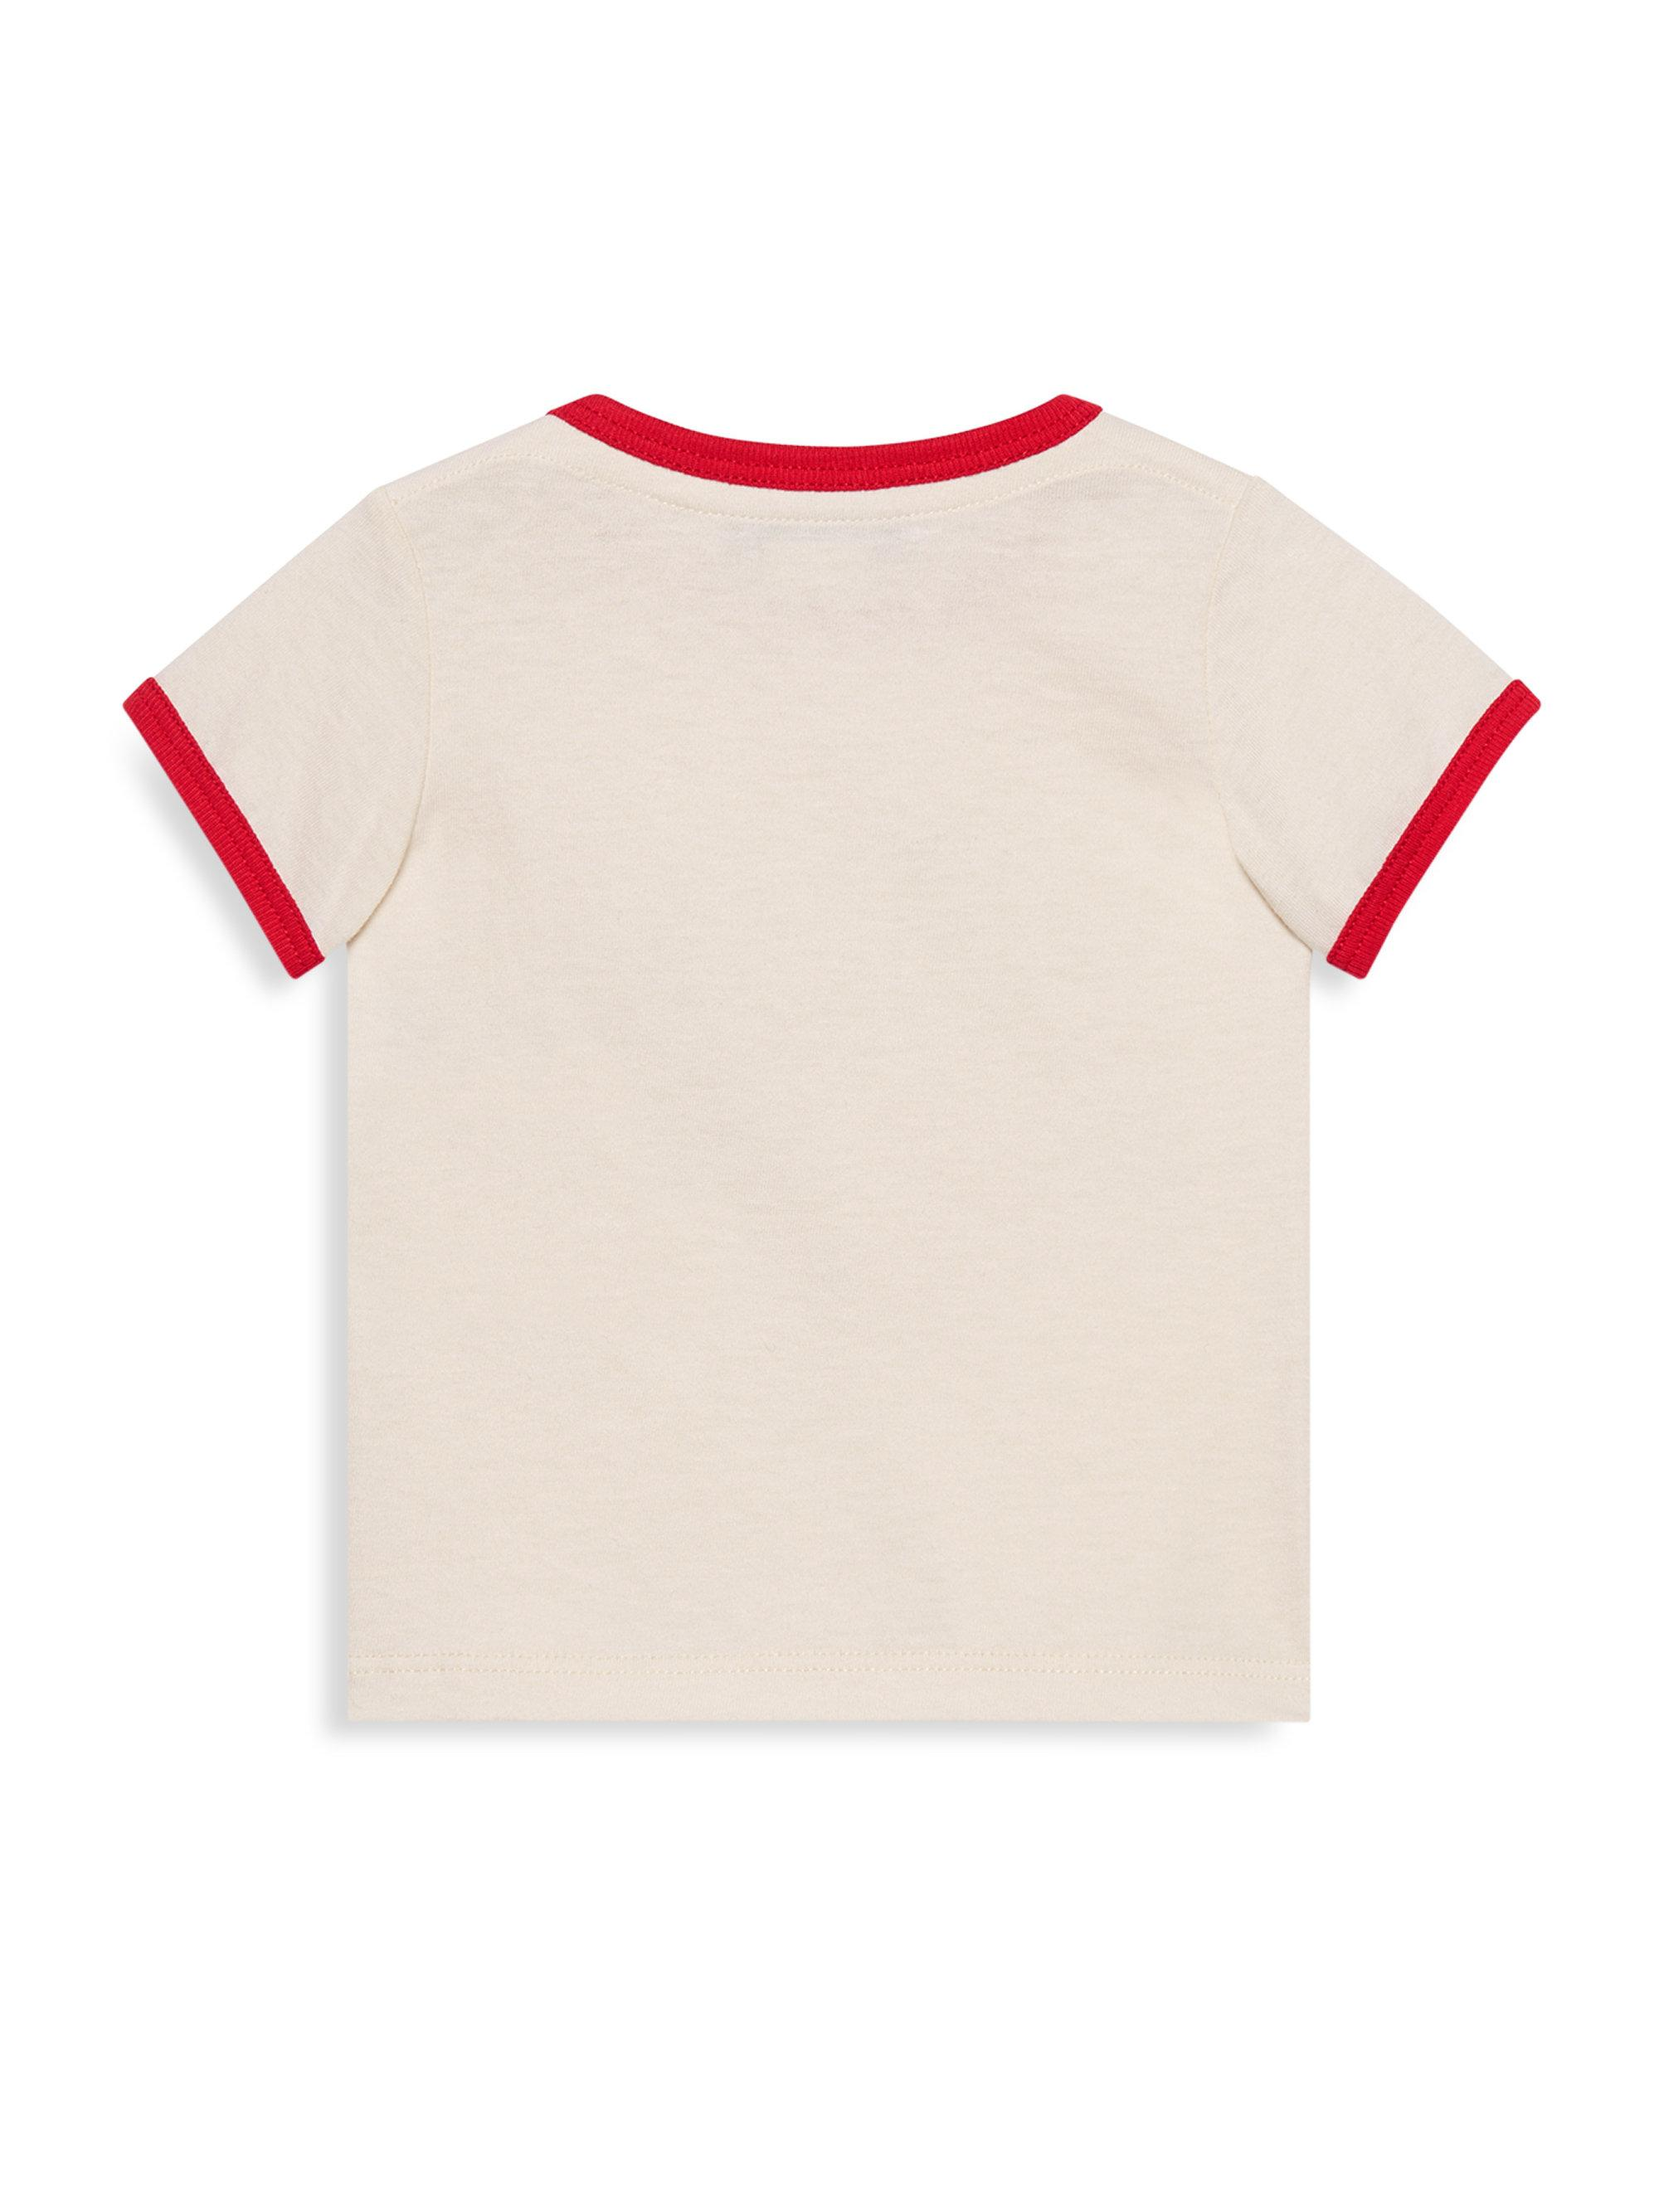 46a7c90d3 Gucci Baby Girl's Strawberry & Rainbow Tee in Gray - Lyst